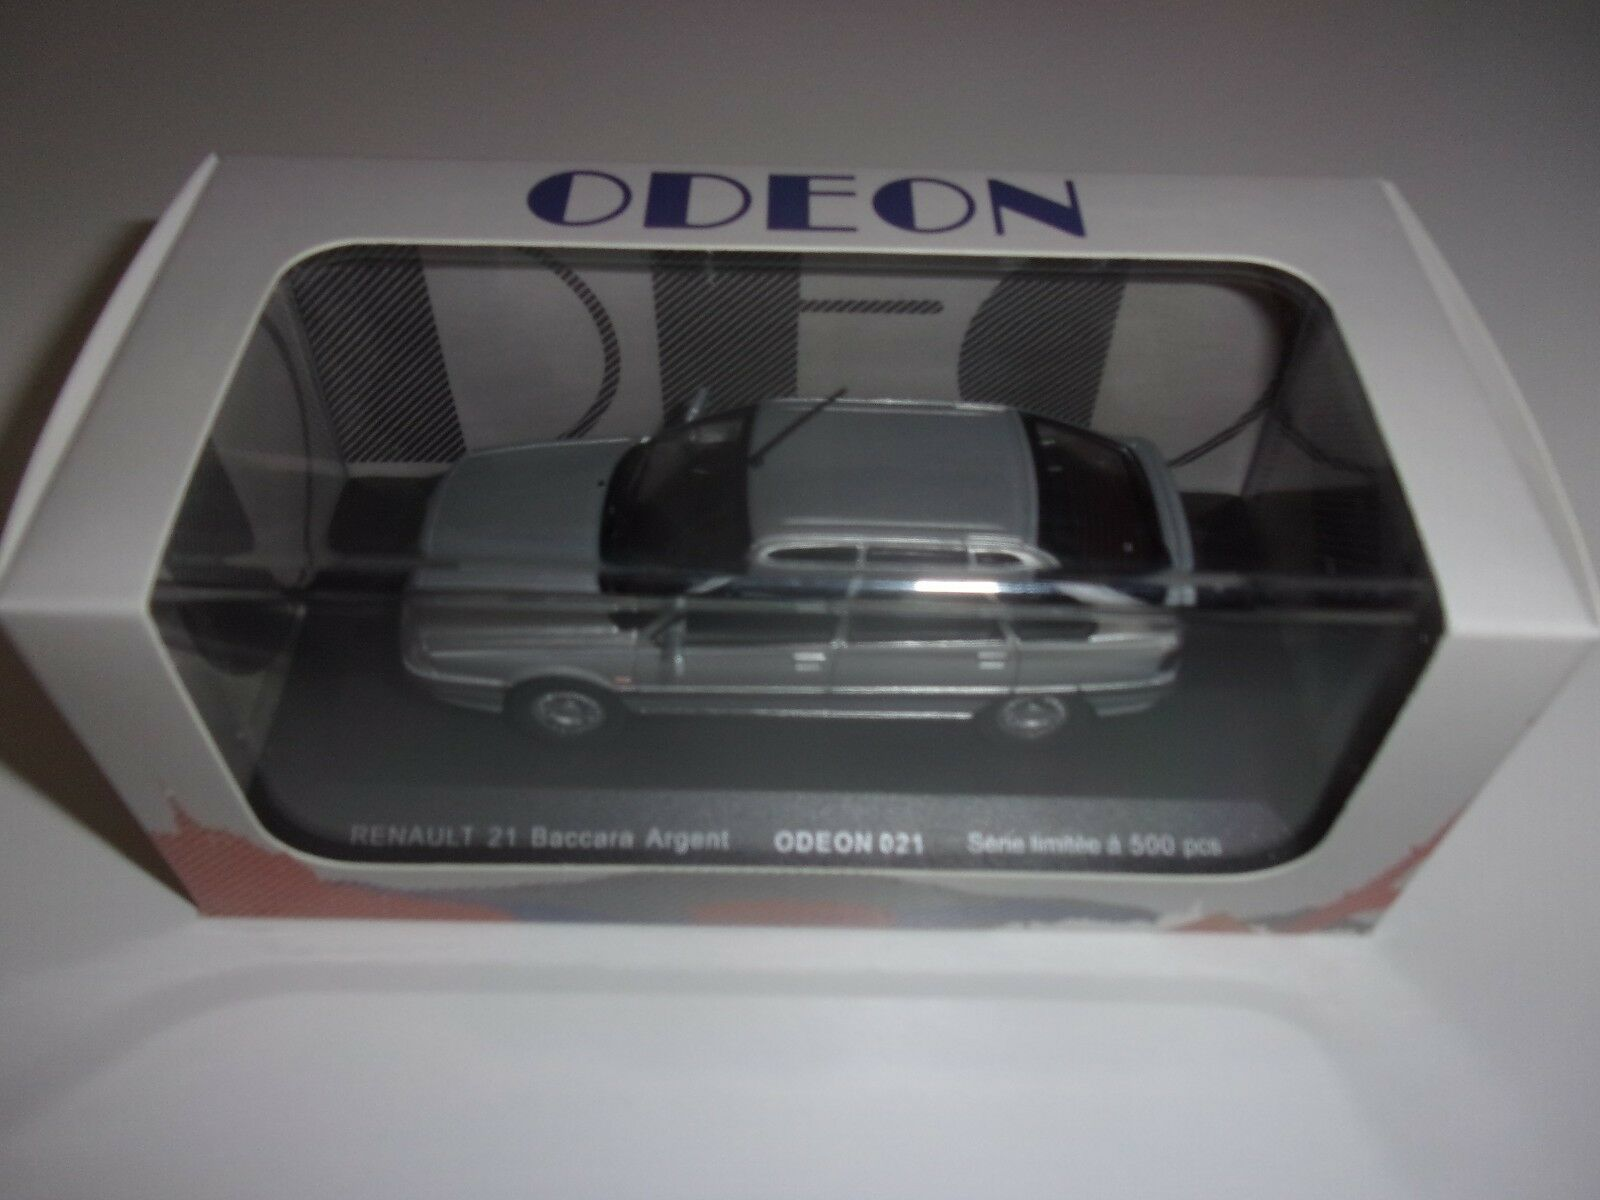 1 43 RENAULT R21  BACCARA  ARGENT-1990-ODEON021